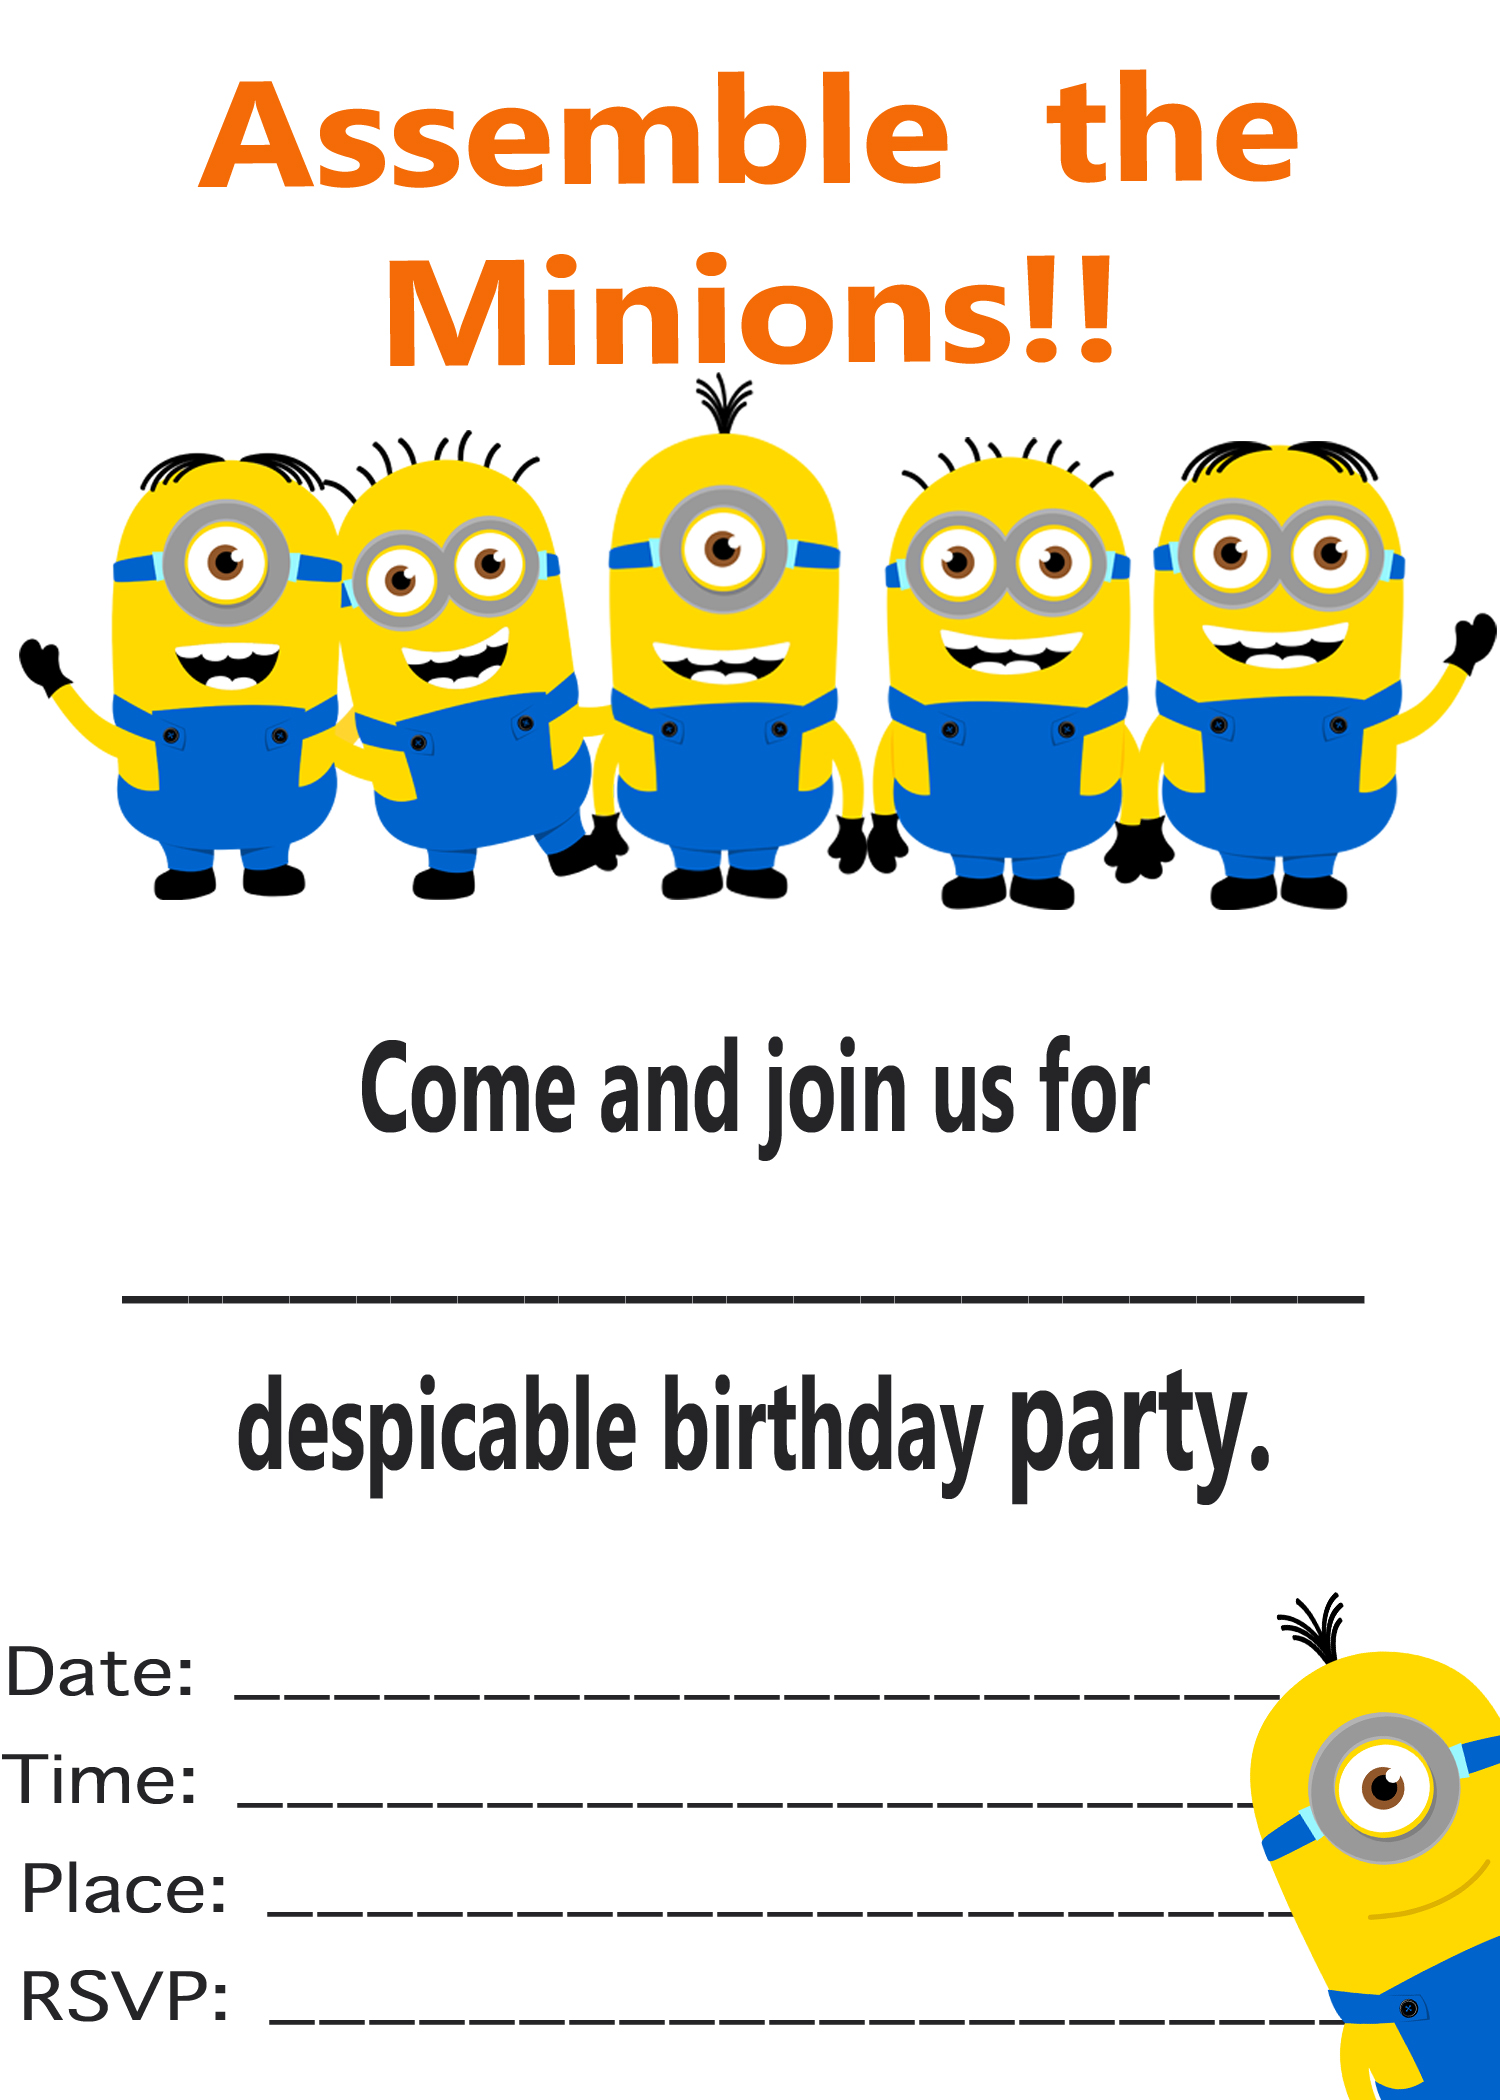 free printable birthday invitation cards ; Minion-Birthday-Party-Invitations-Templates-to-inspire-you-how-to-create-the-birthday-Invitation-with-the-best-way-1